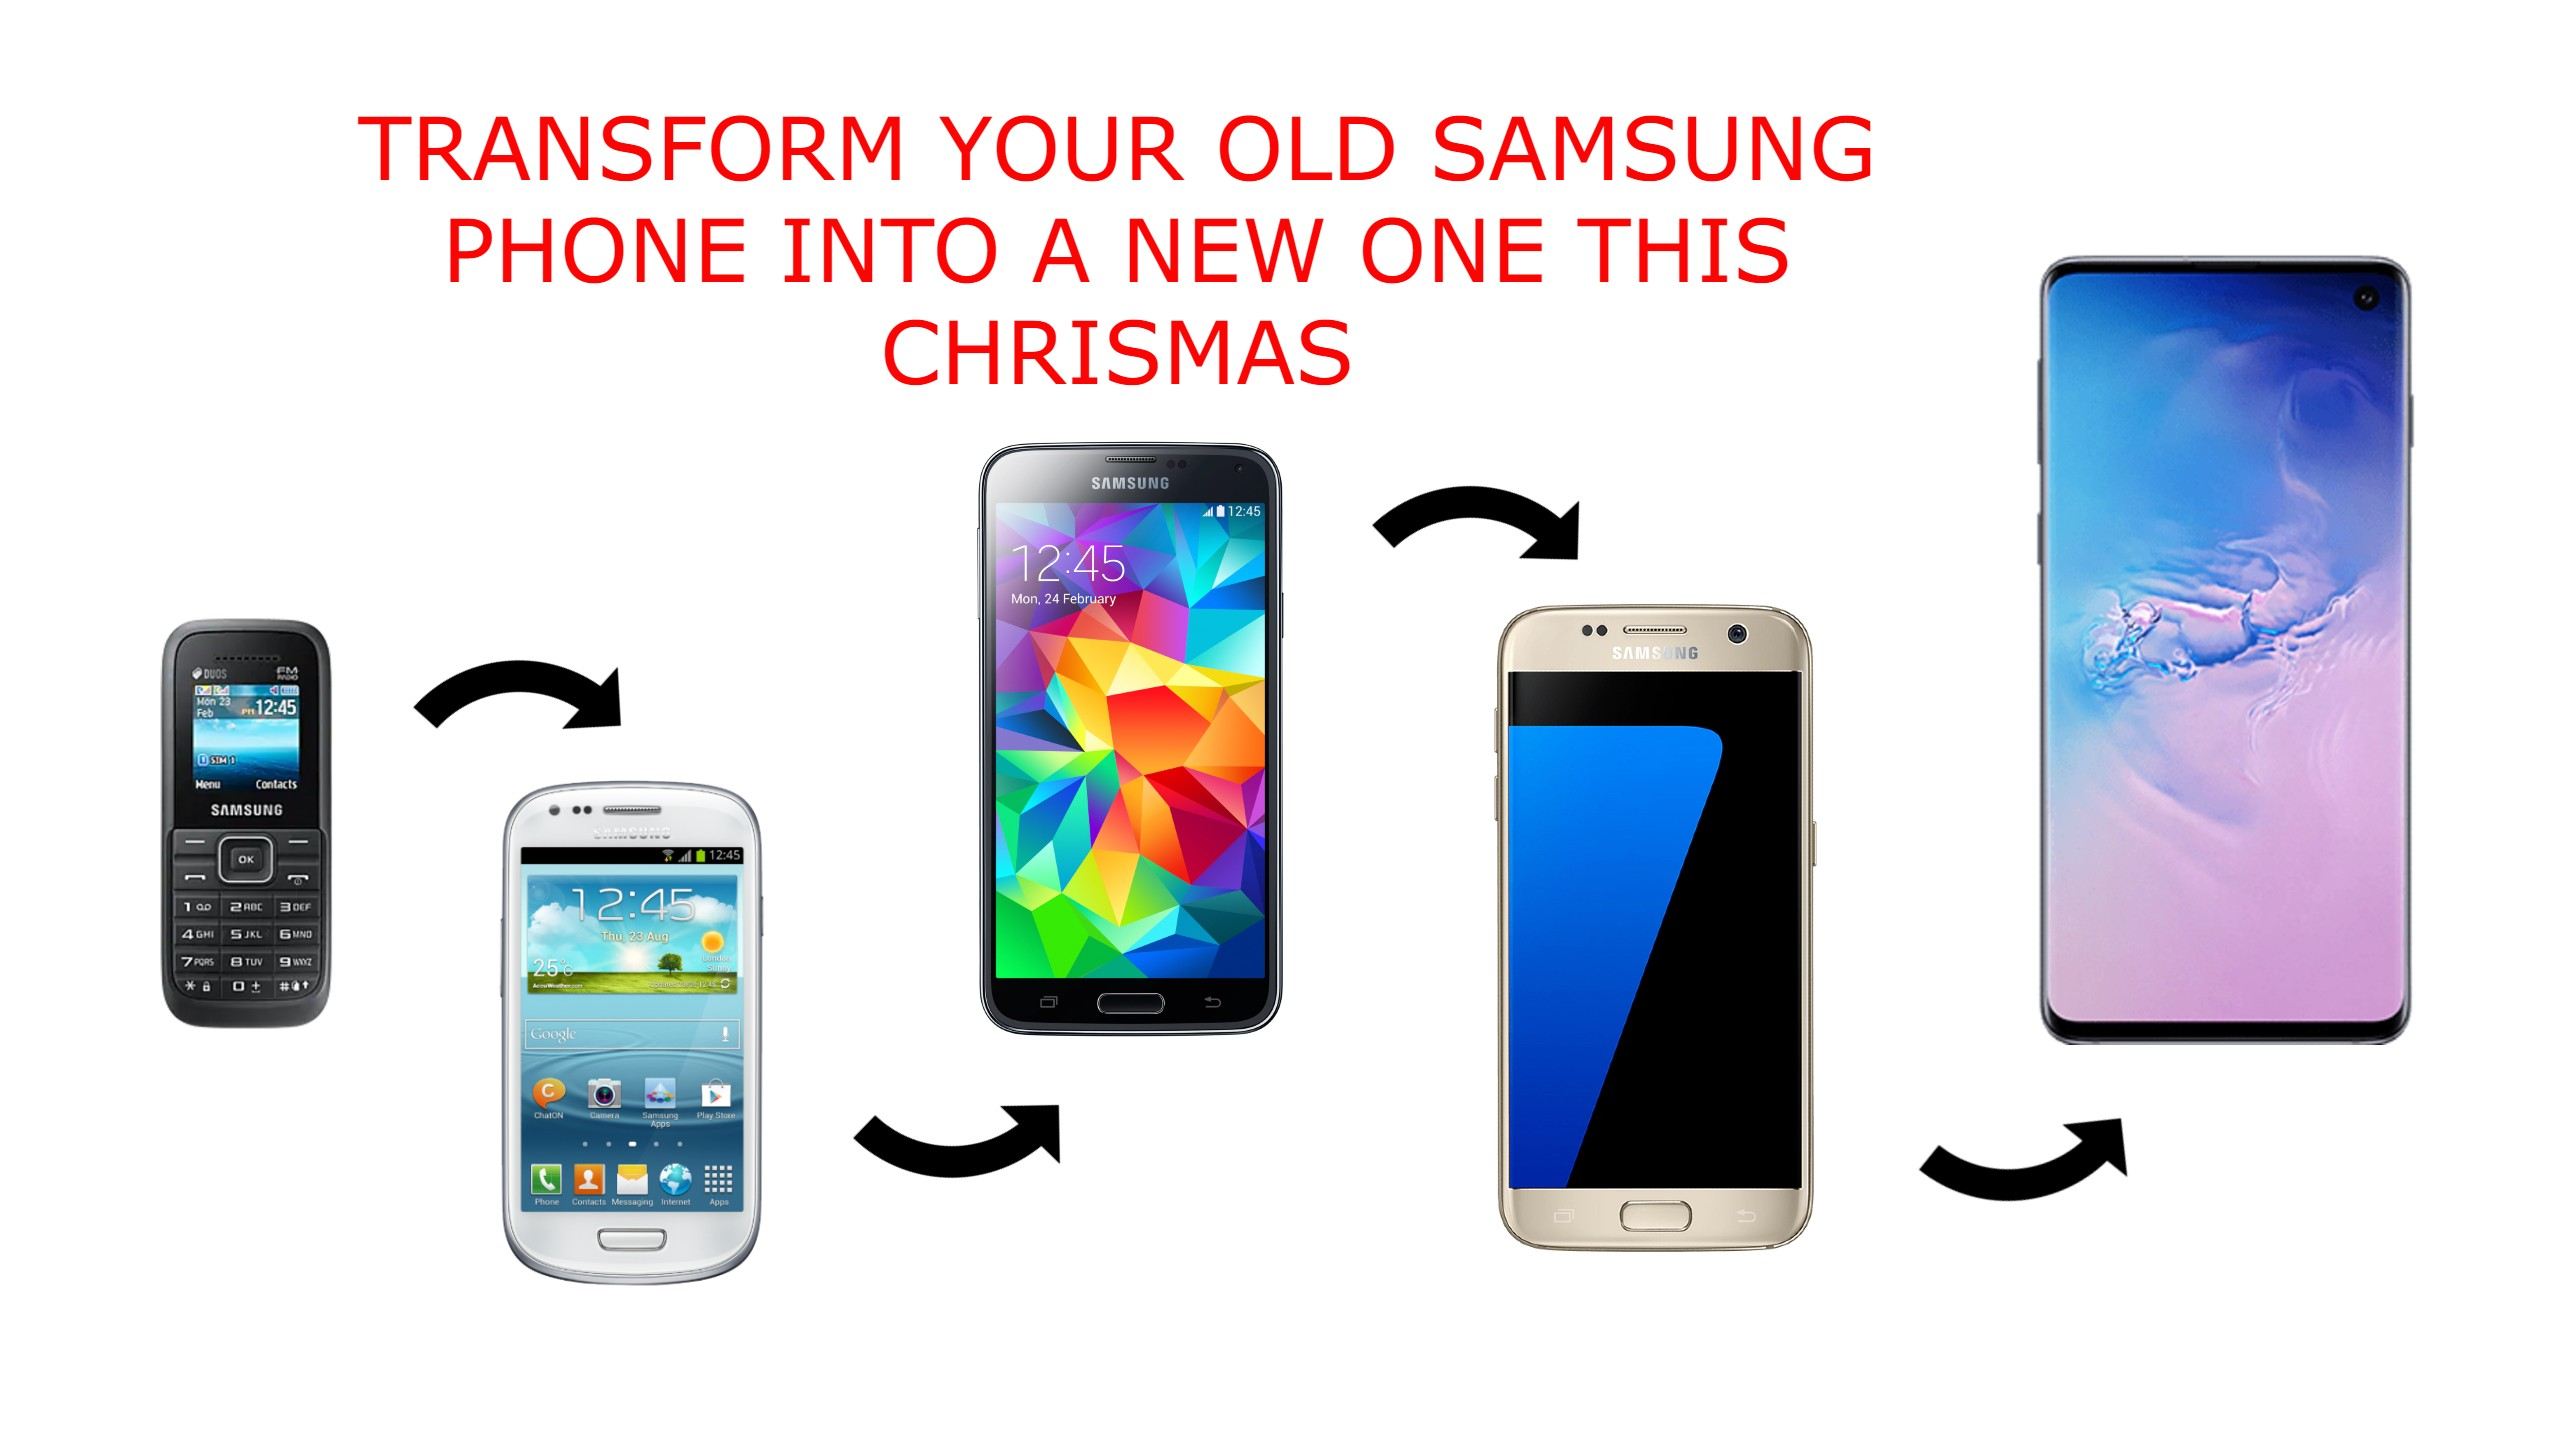 TRANSFORM YOUR OLD SAMSUNG MOBILE PHONE INTO A NEW ONE THIS CHRISMAS